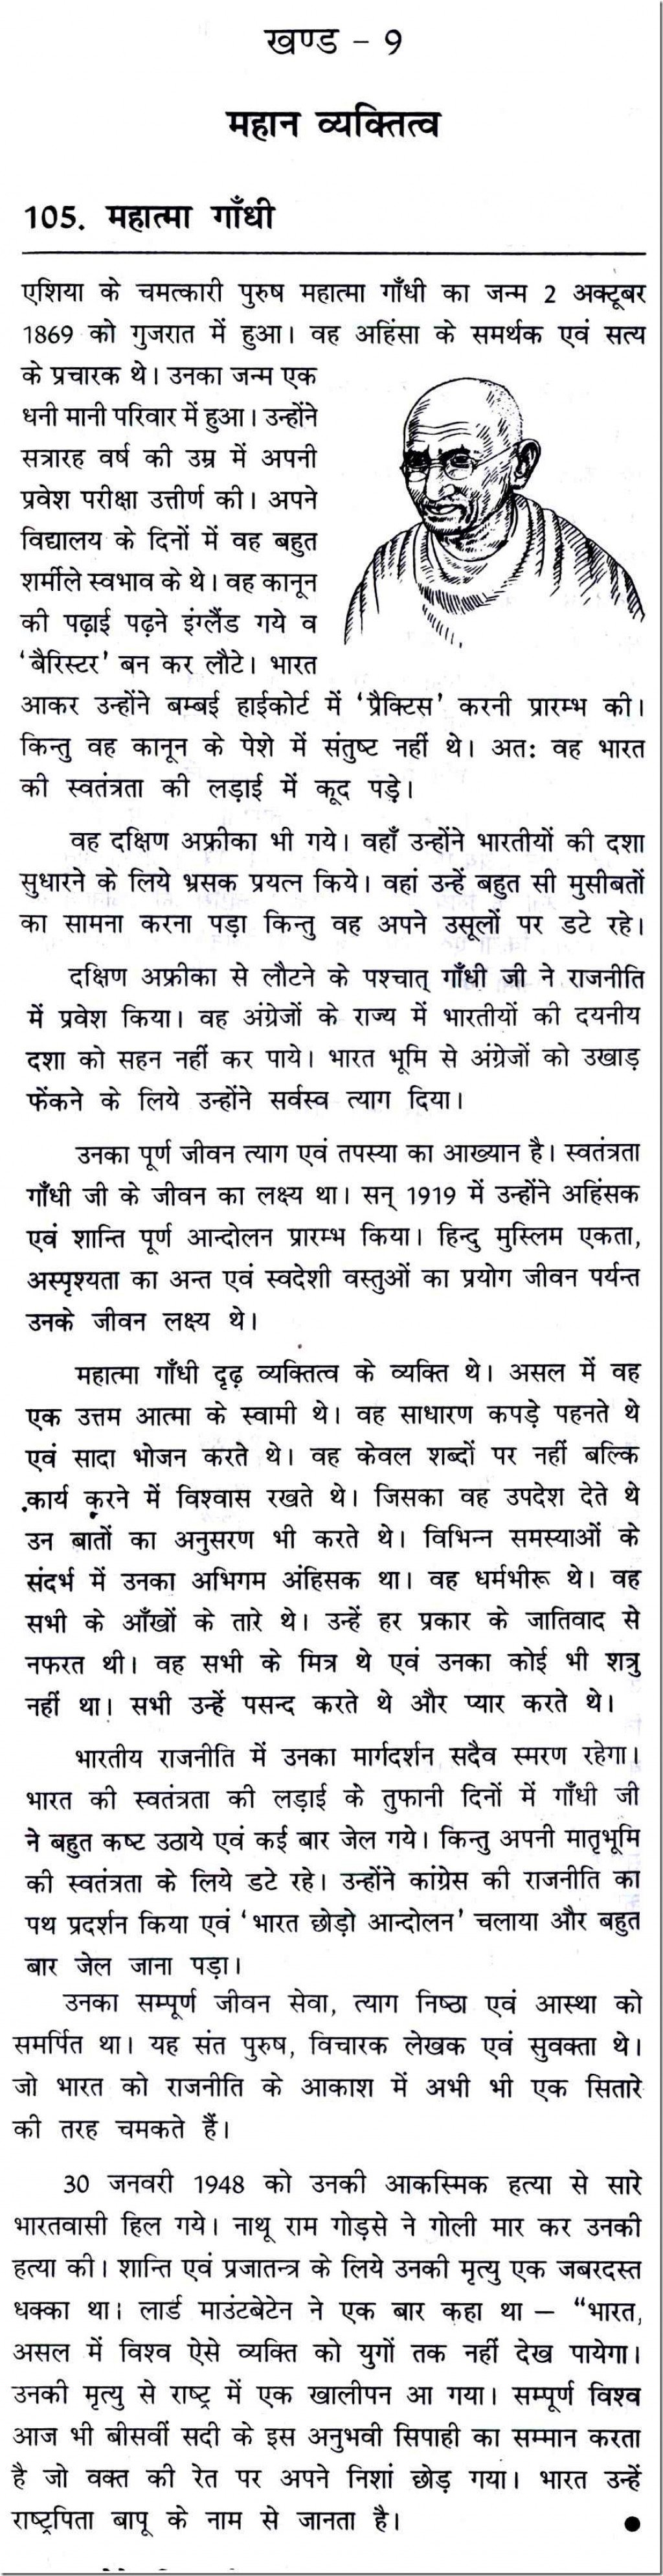 012 Mahatma Gandhi Essay 10107 Thumb Magnificent Conclusion In English 1000 Words Pdf Hindi 5 Lines Large